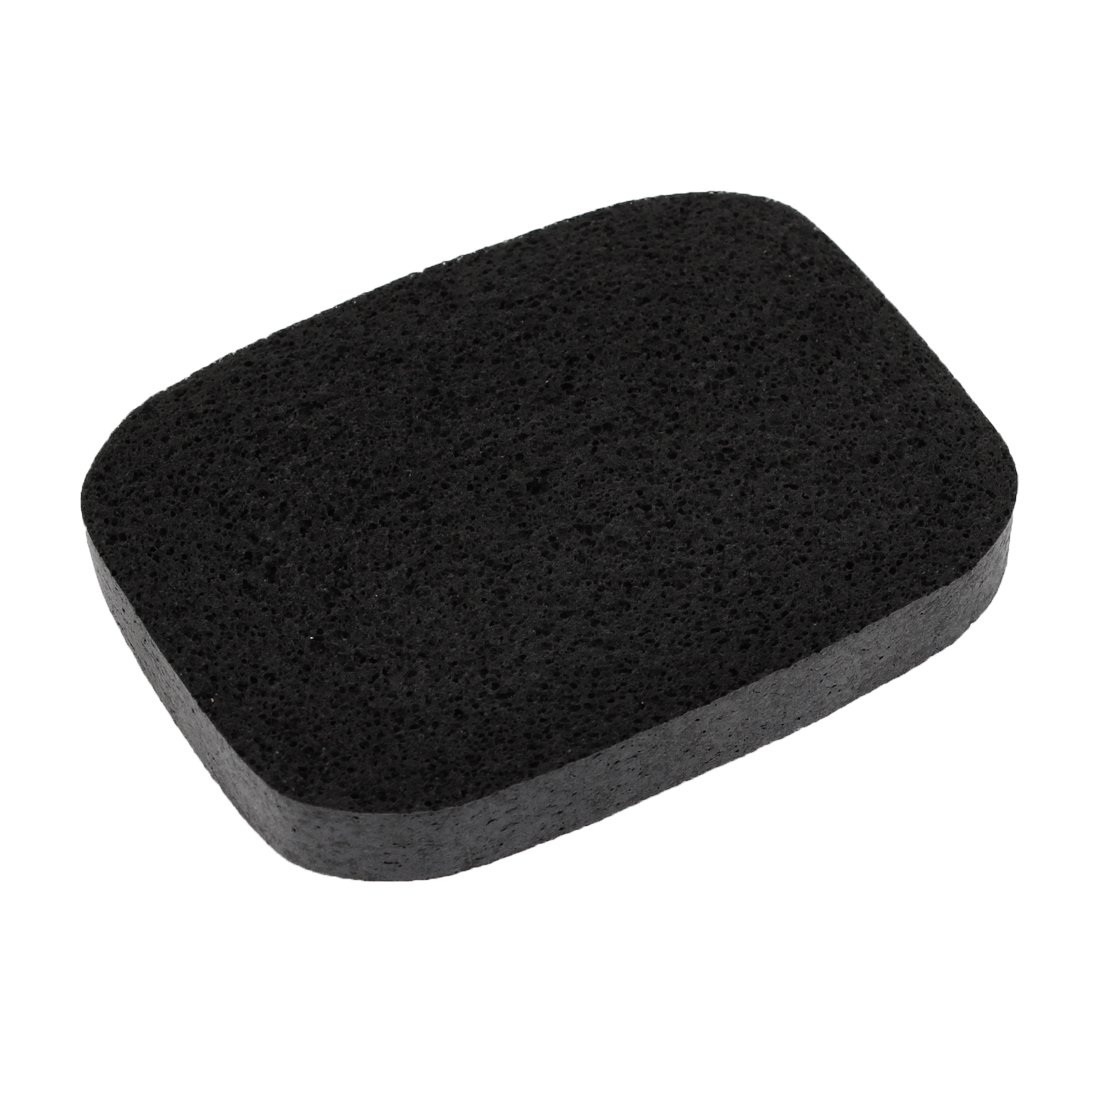 Woman Lady Makeup Removal Rectangular Shaped Facial Cleaning Sponge Black